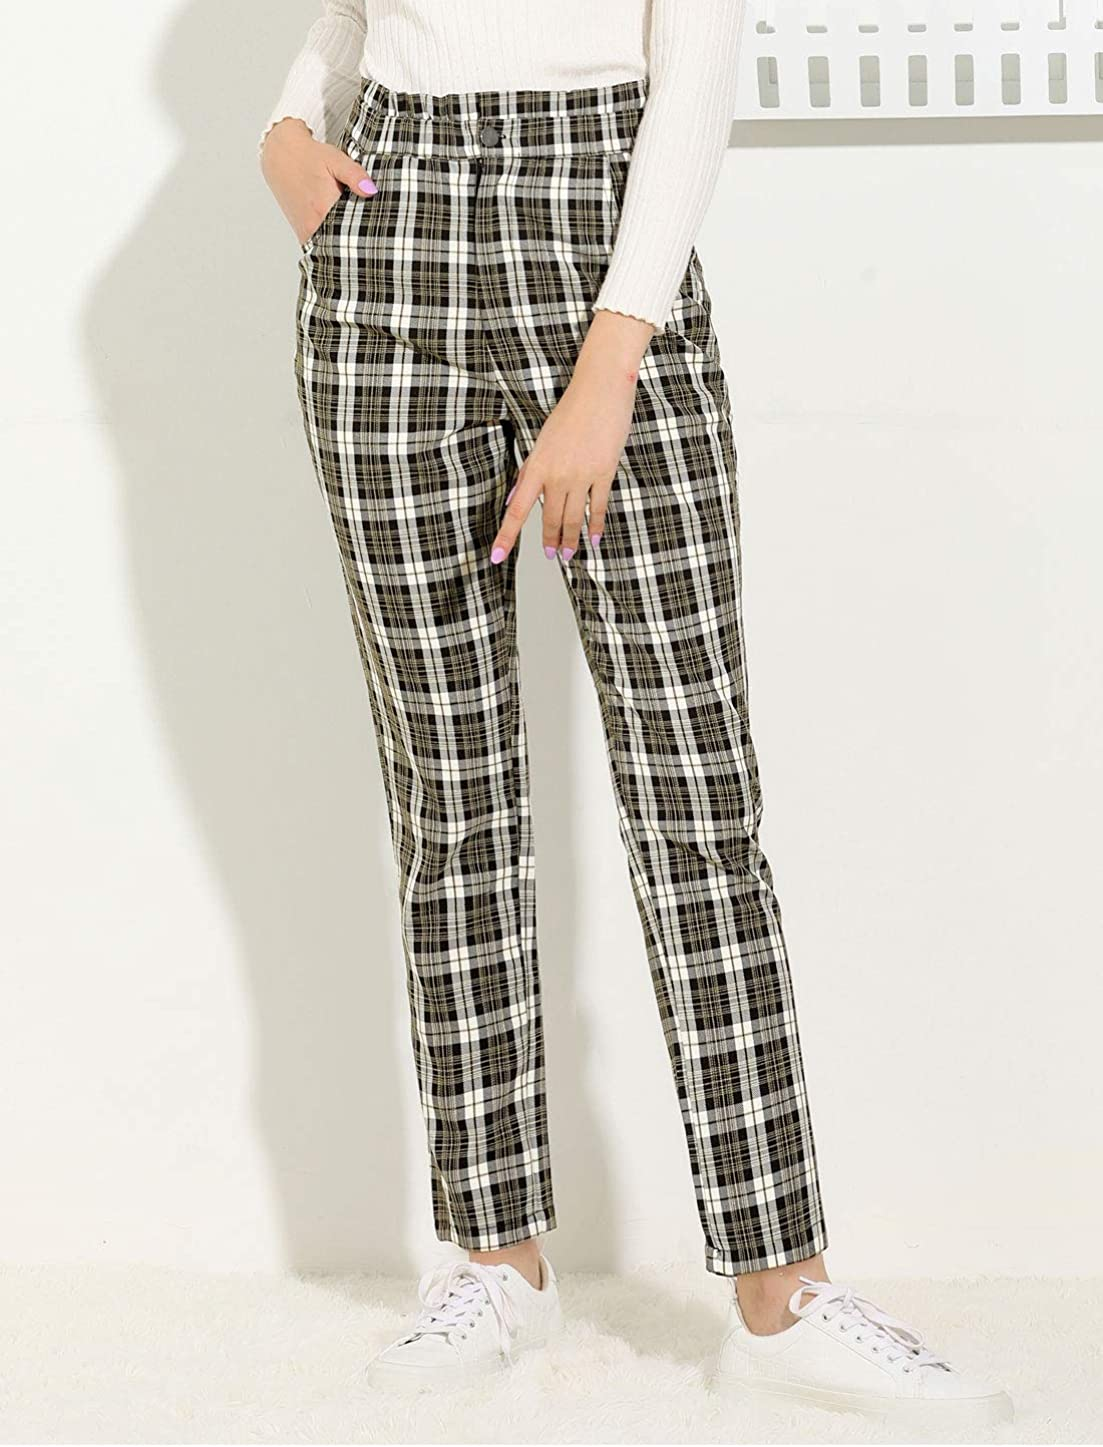 What Did Women Wear in the 1950s? 1950s Fashion Guide Allegra K Womens Plaid Ankle Pants Tartan Check Elastic High Waist Work Trousers $24.99 AT vintagedancer.com